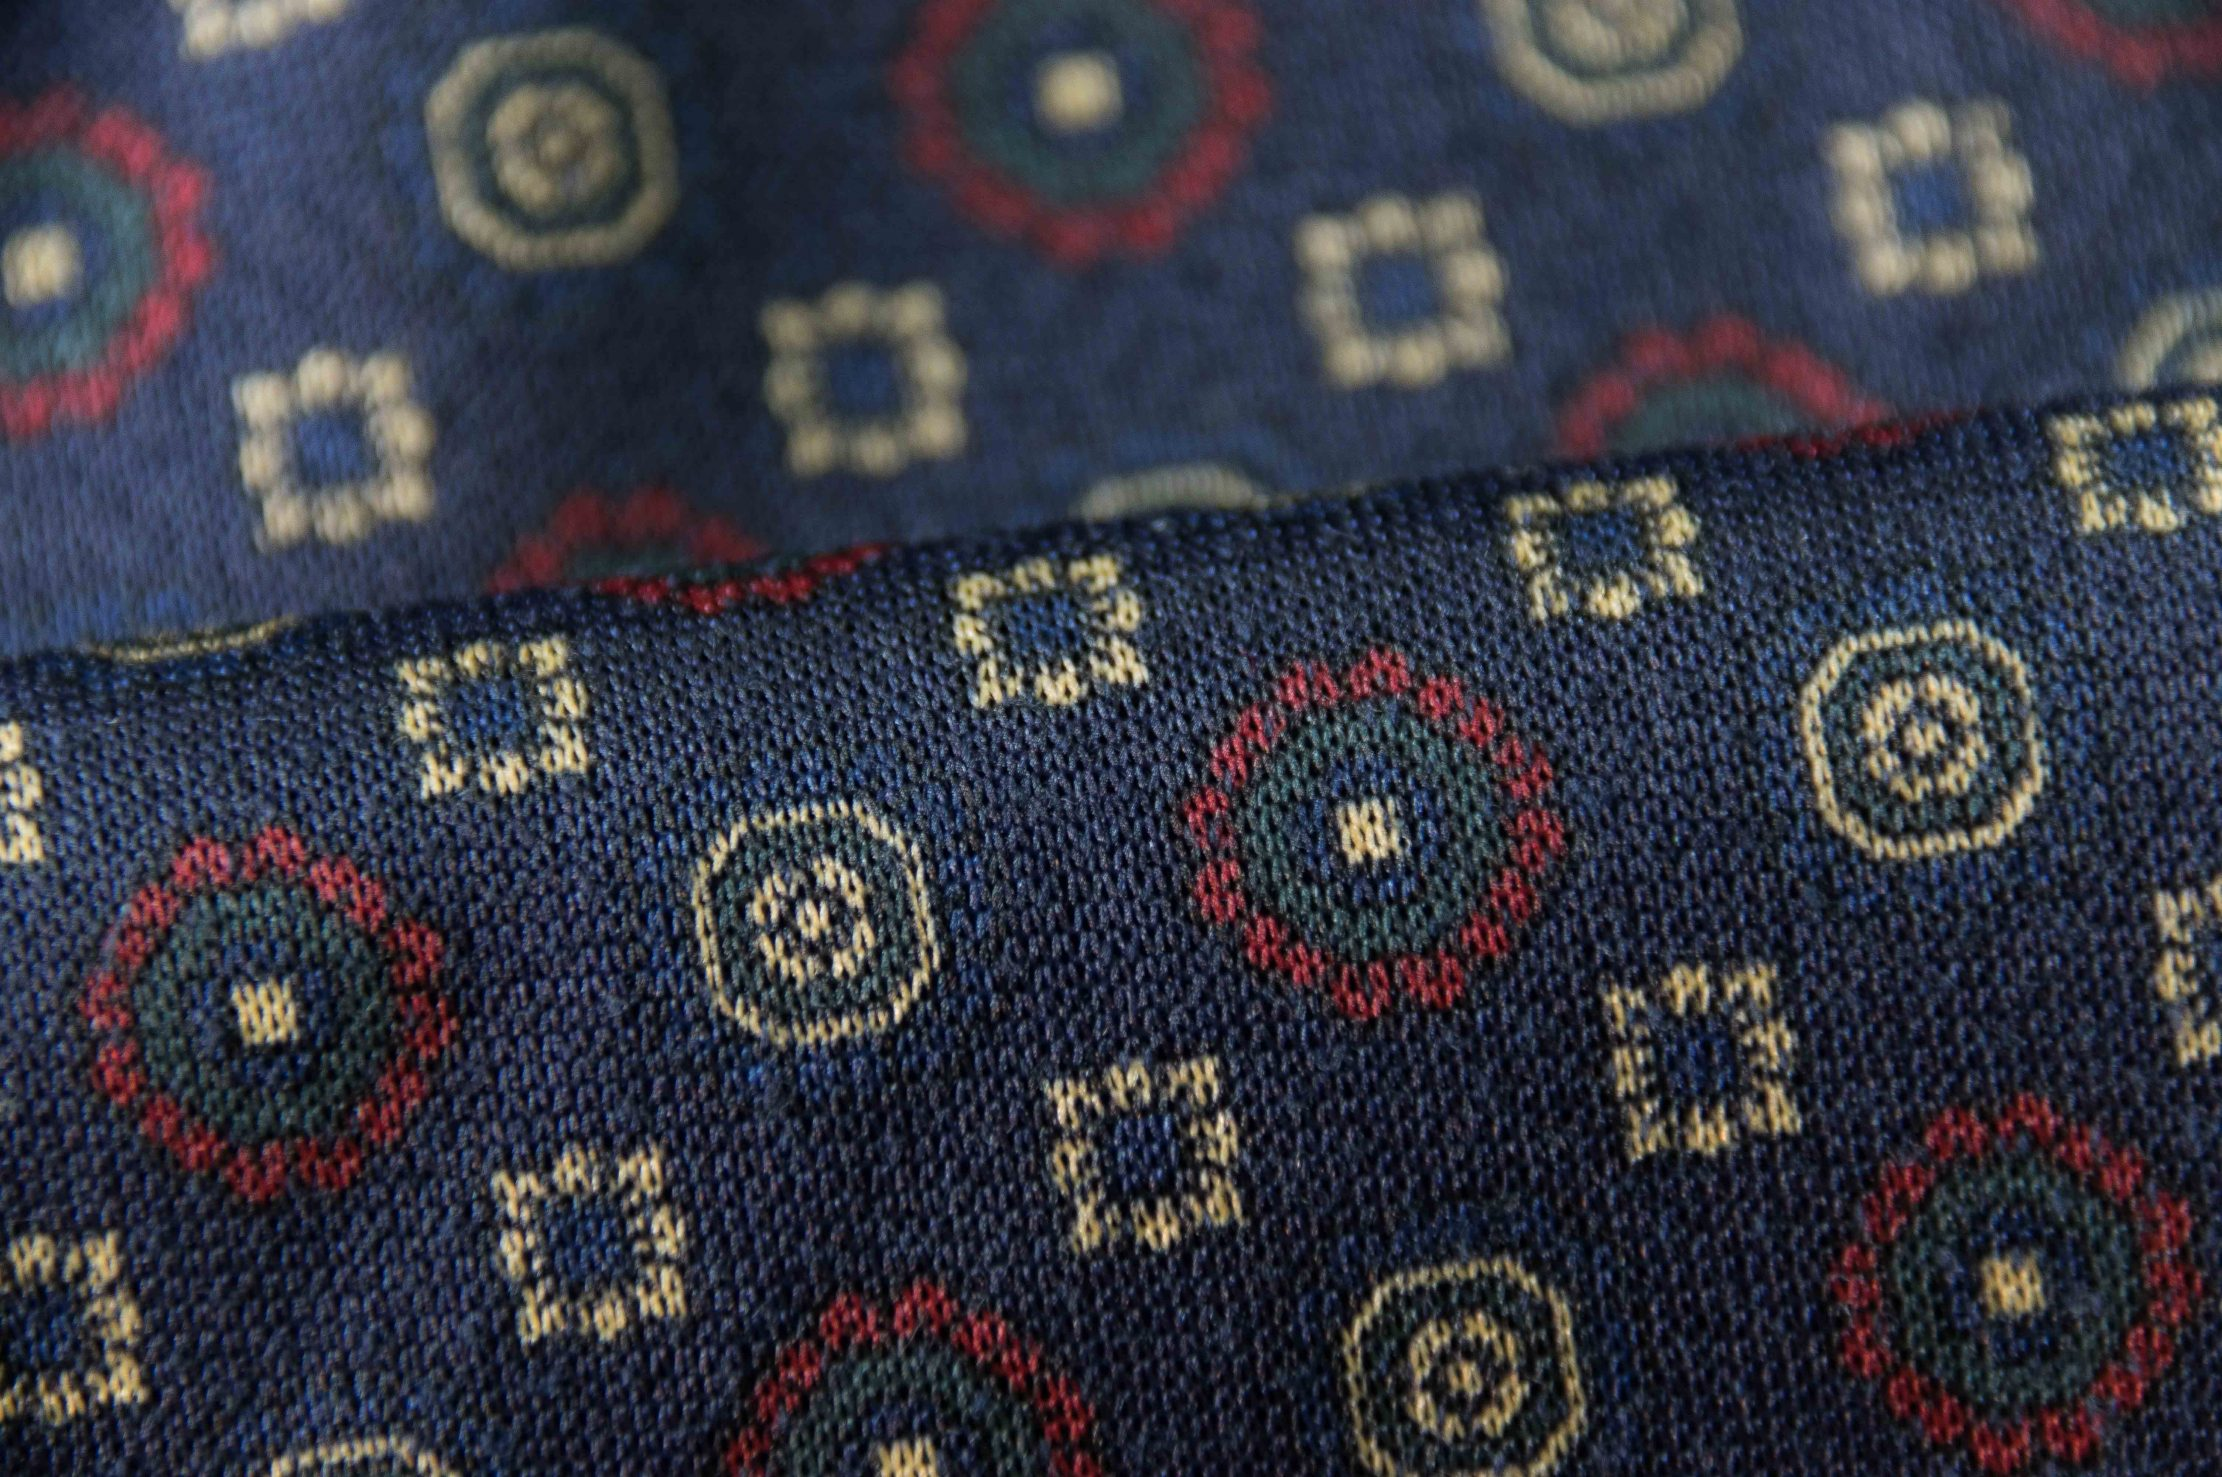 40-6 Inside brushed, 80/20 cotton/polyester